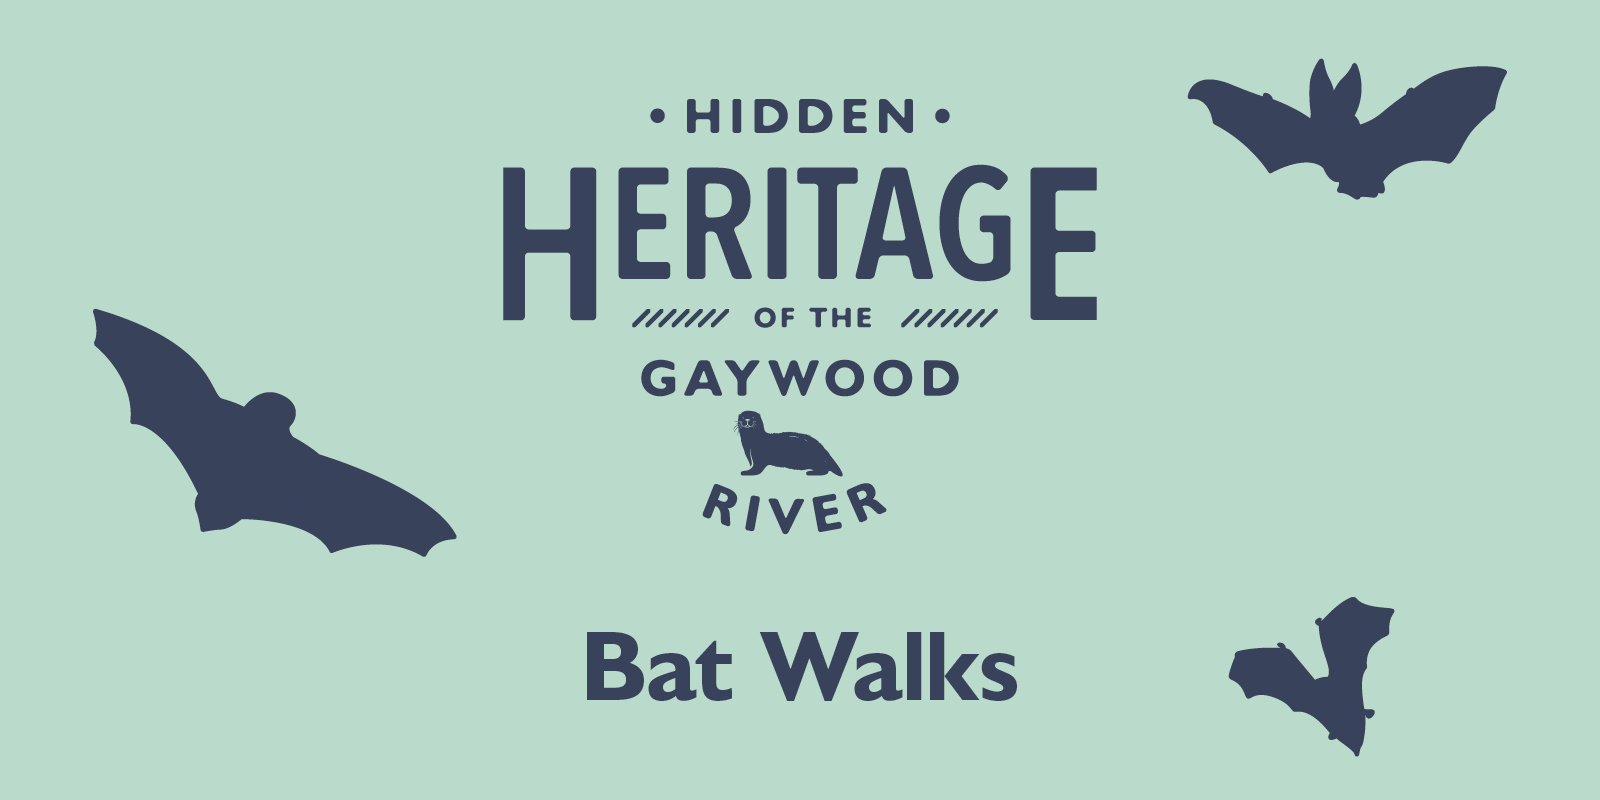 hidden heritage of the gaywood river bat walks